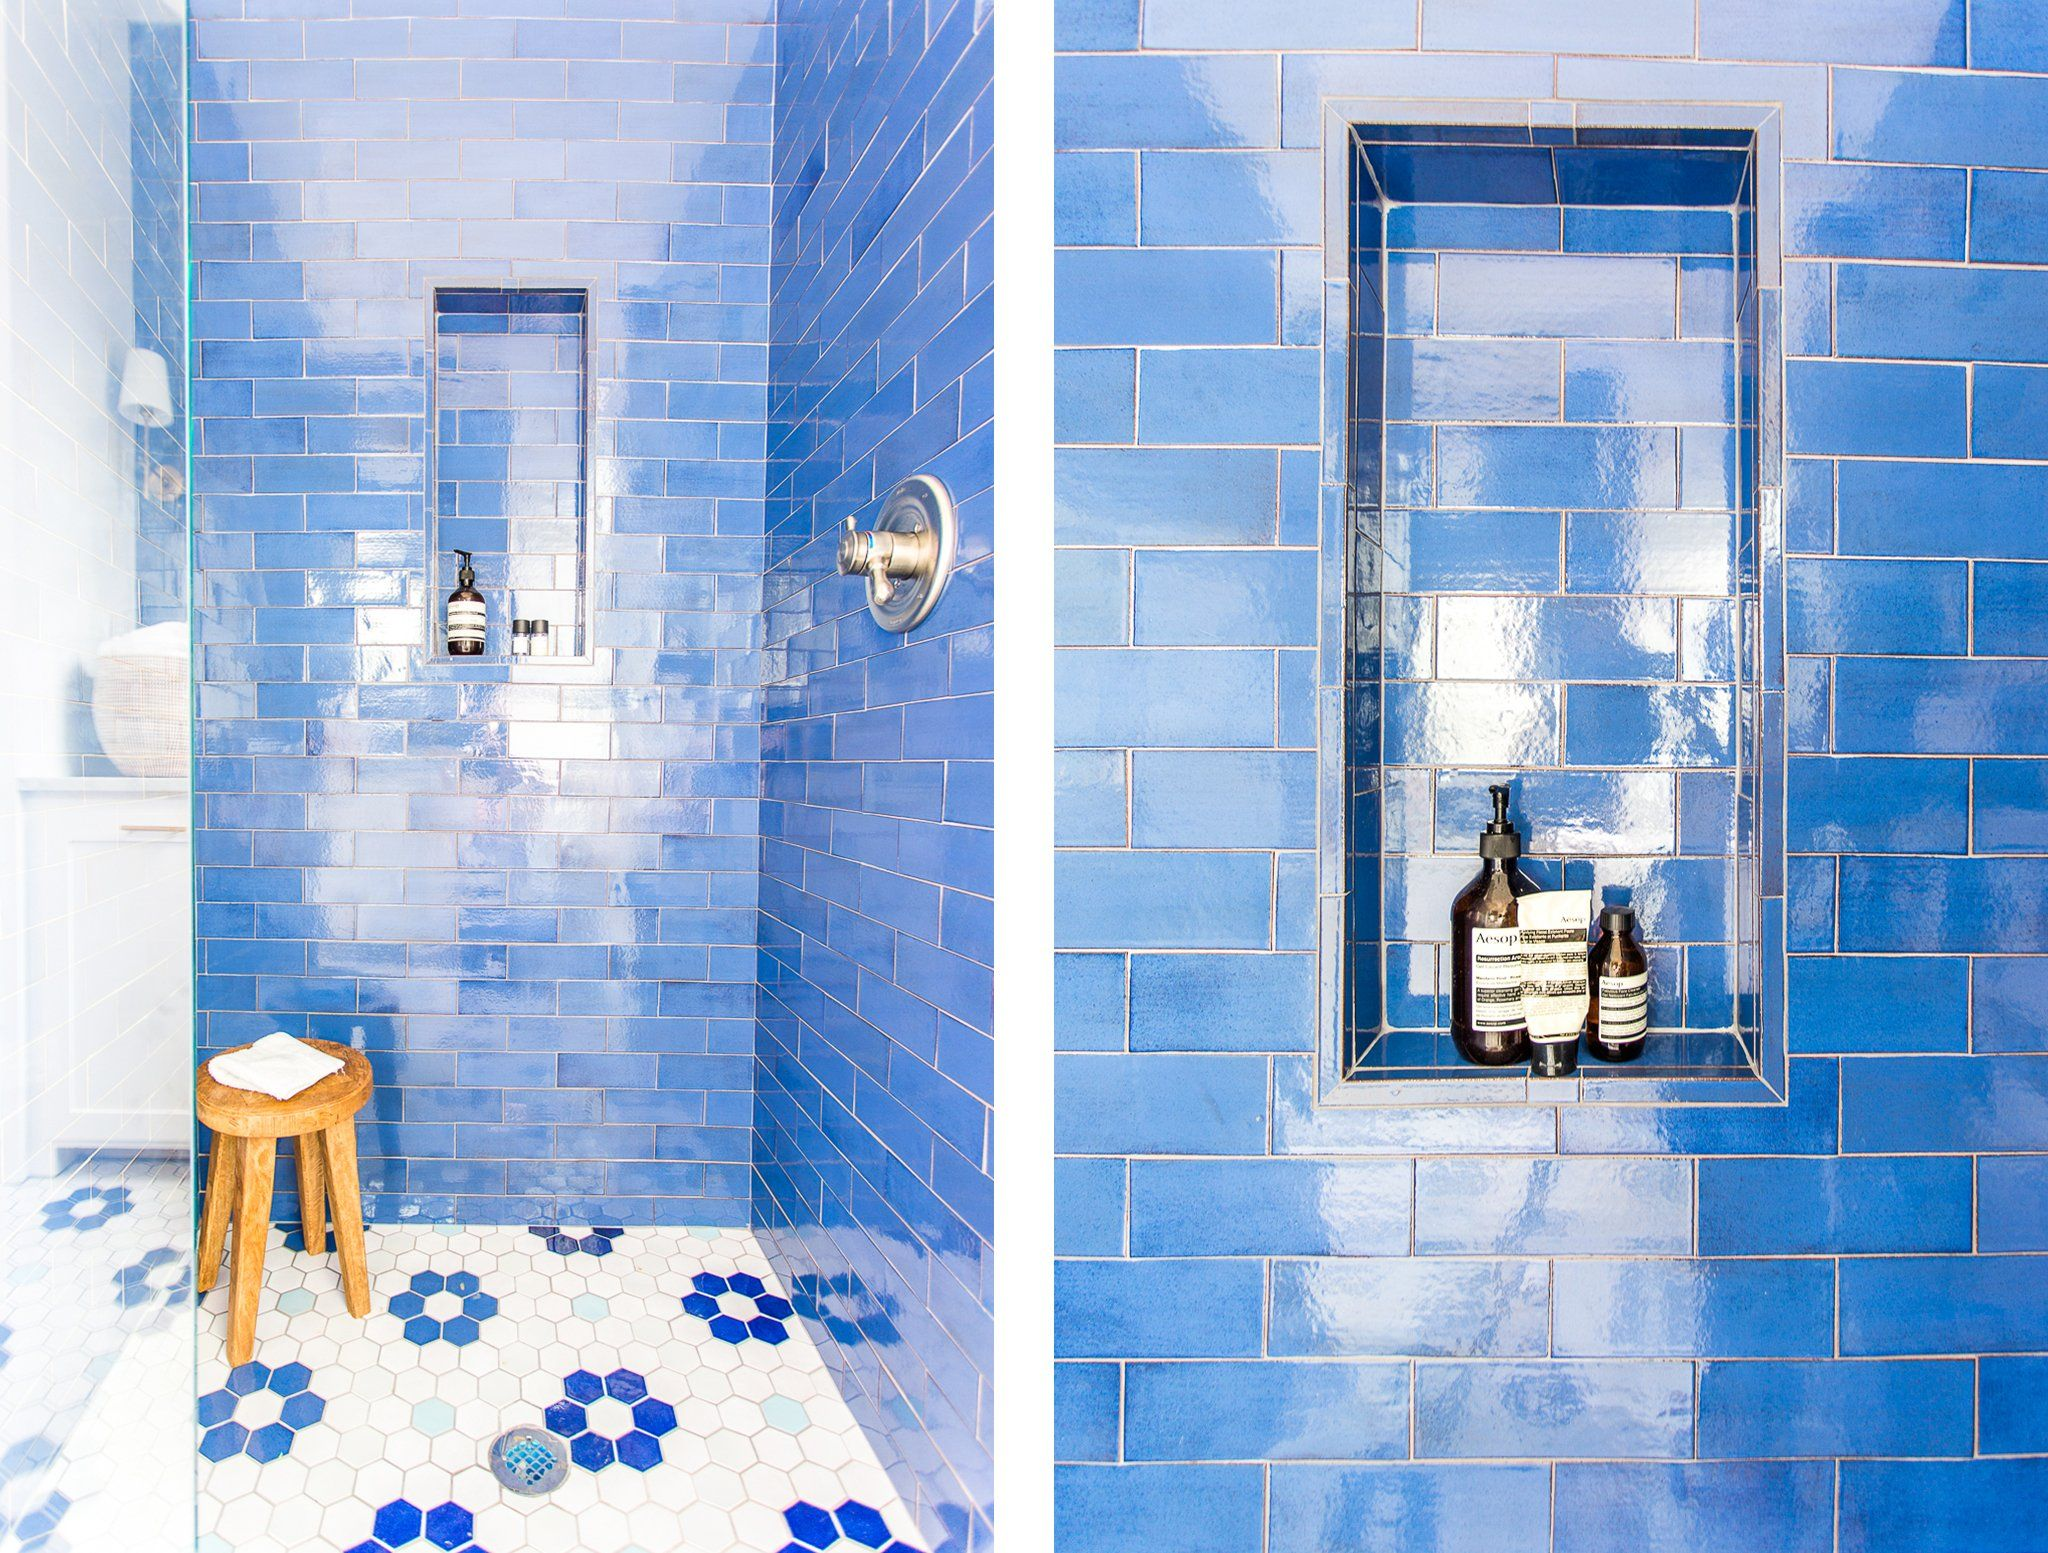 Stunning Sapphire Blue Tile Design For A Small Bathroom Tile Bathroom Small Bathroom Tiles Blue Bathroom Tile